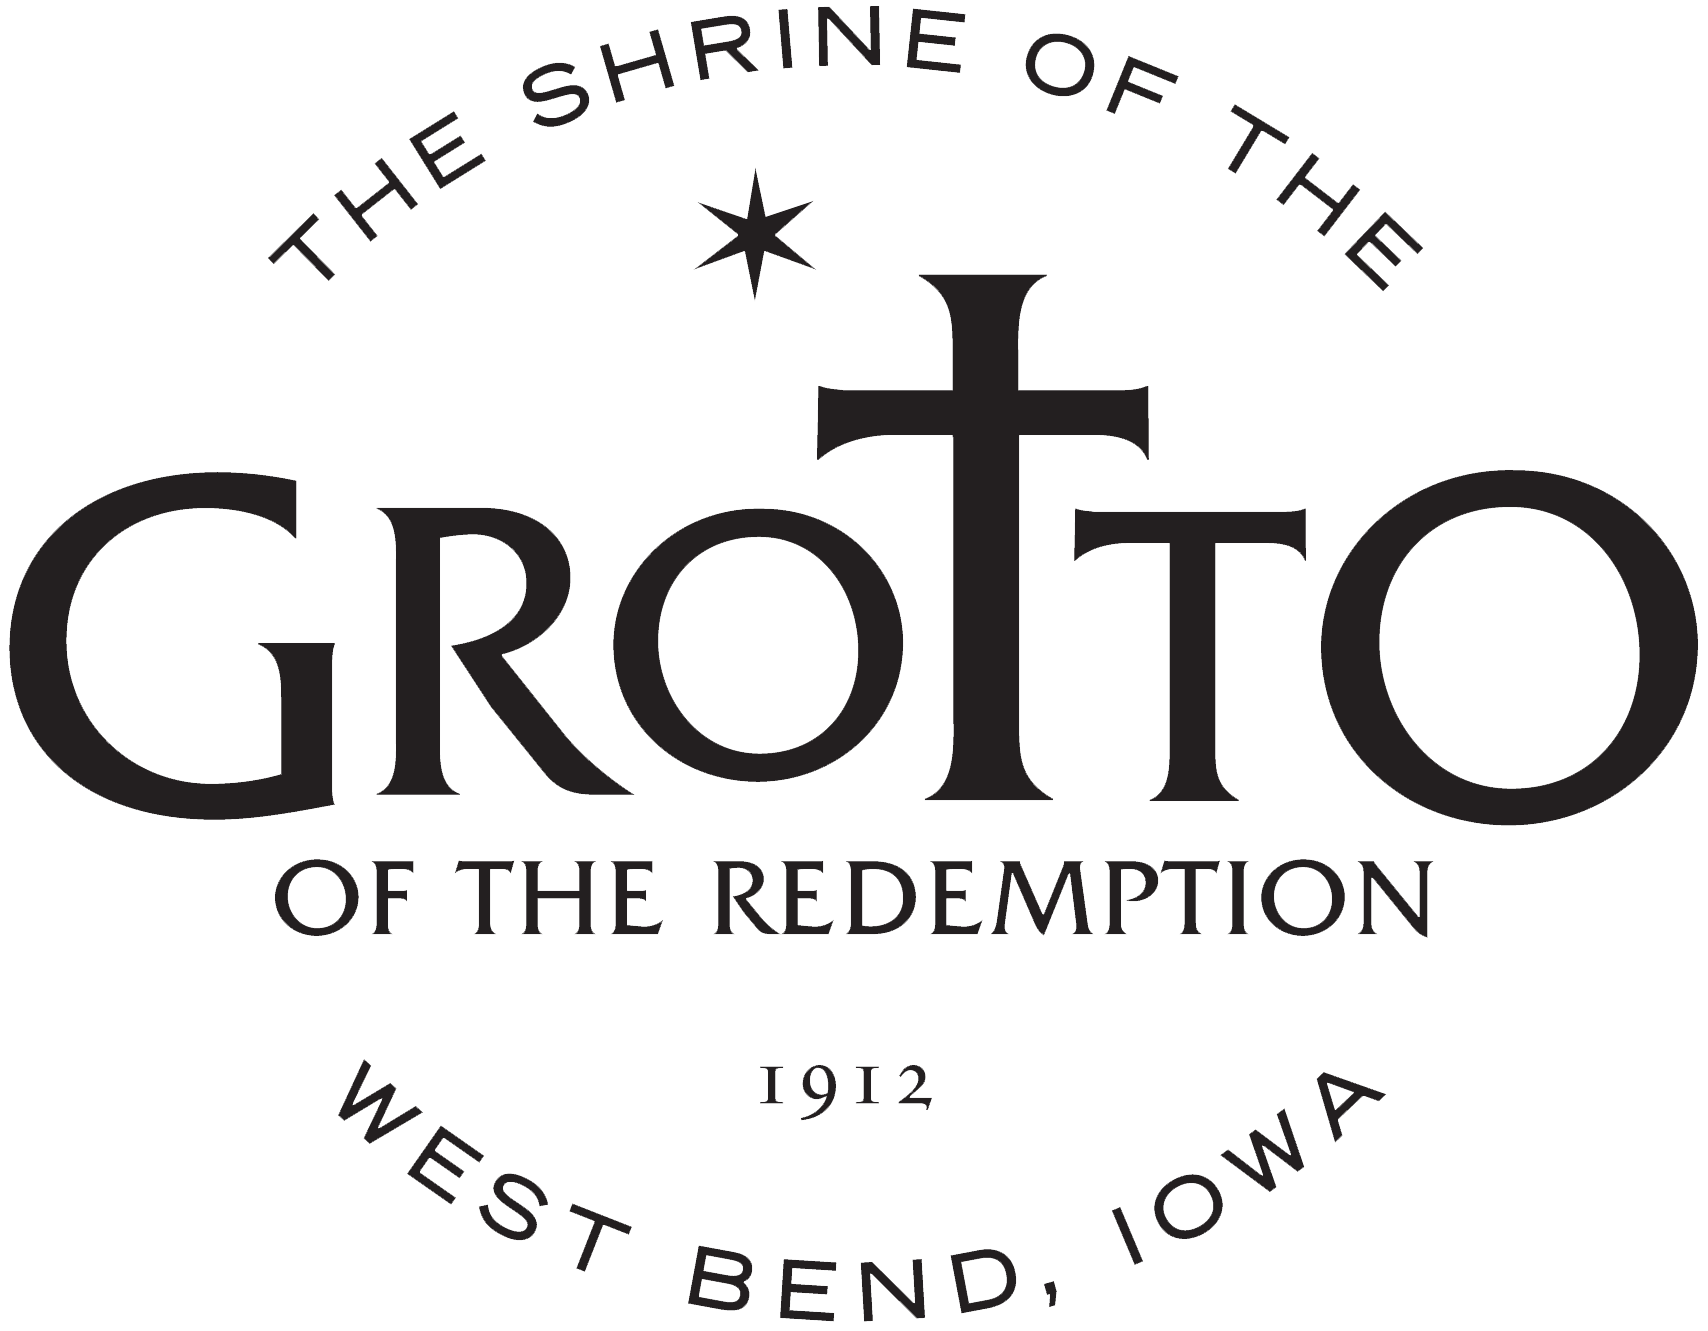 West Bend, IA - Grotto of the Redemption